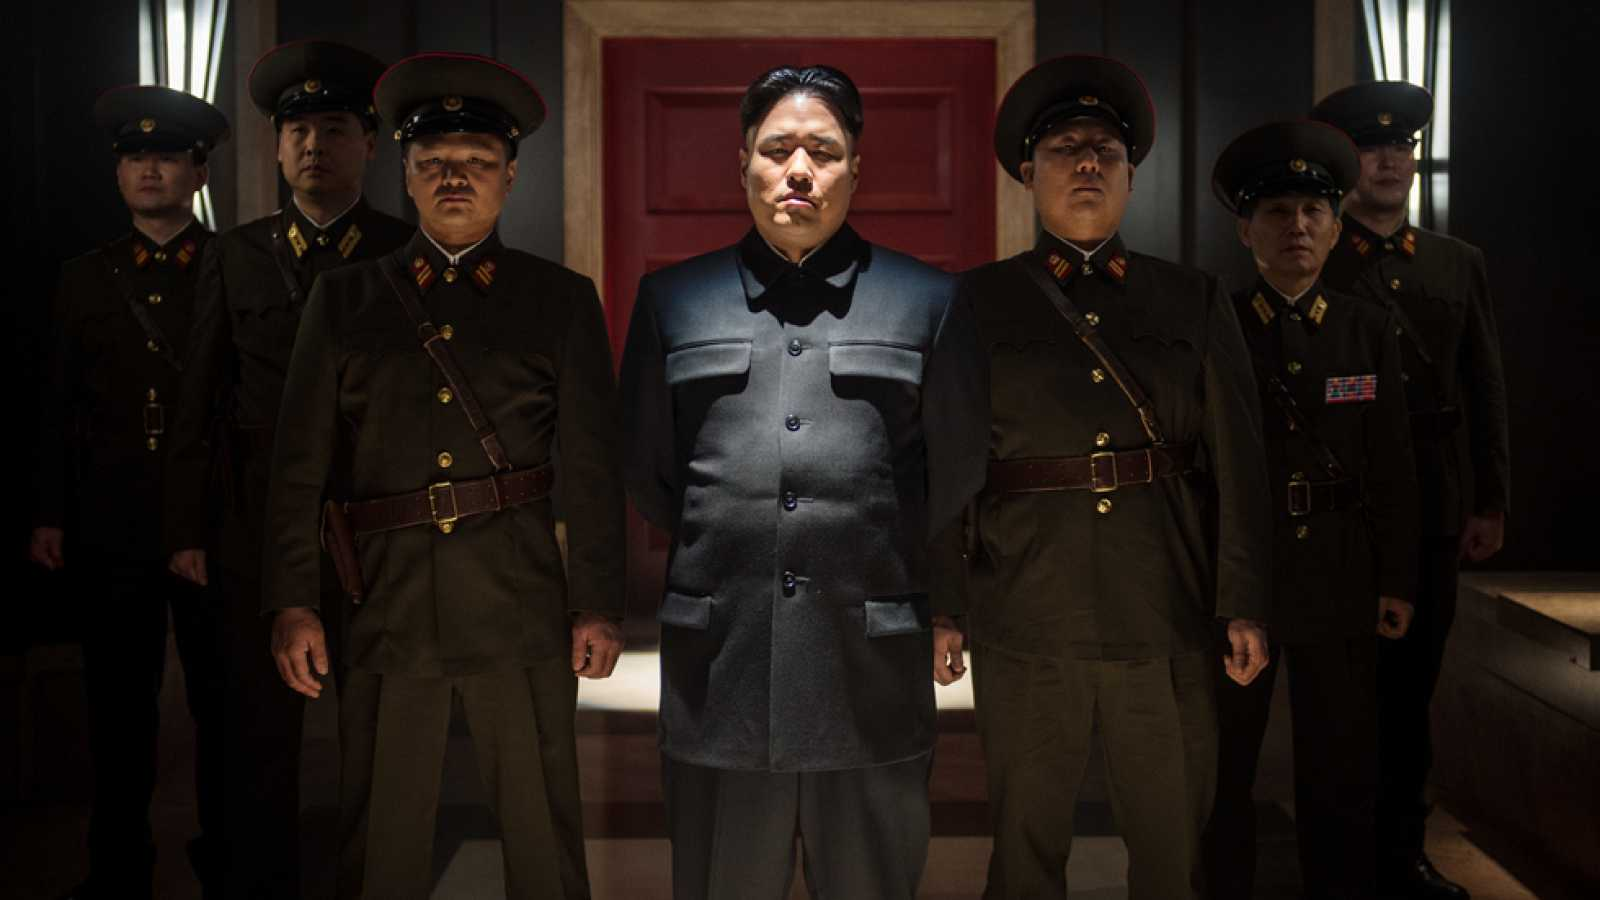 Clip exclusivo de la película 'The Interview'